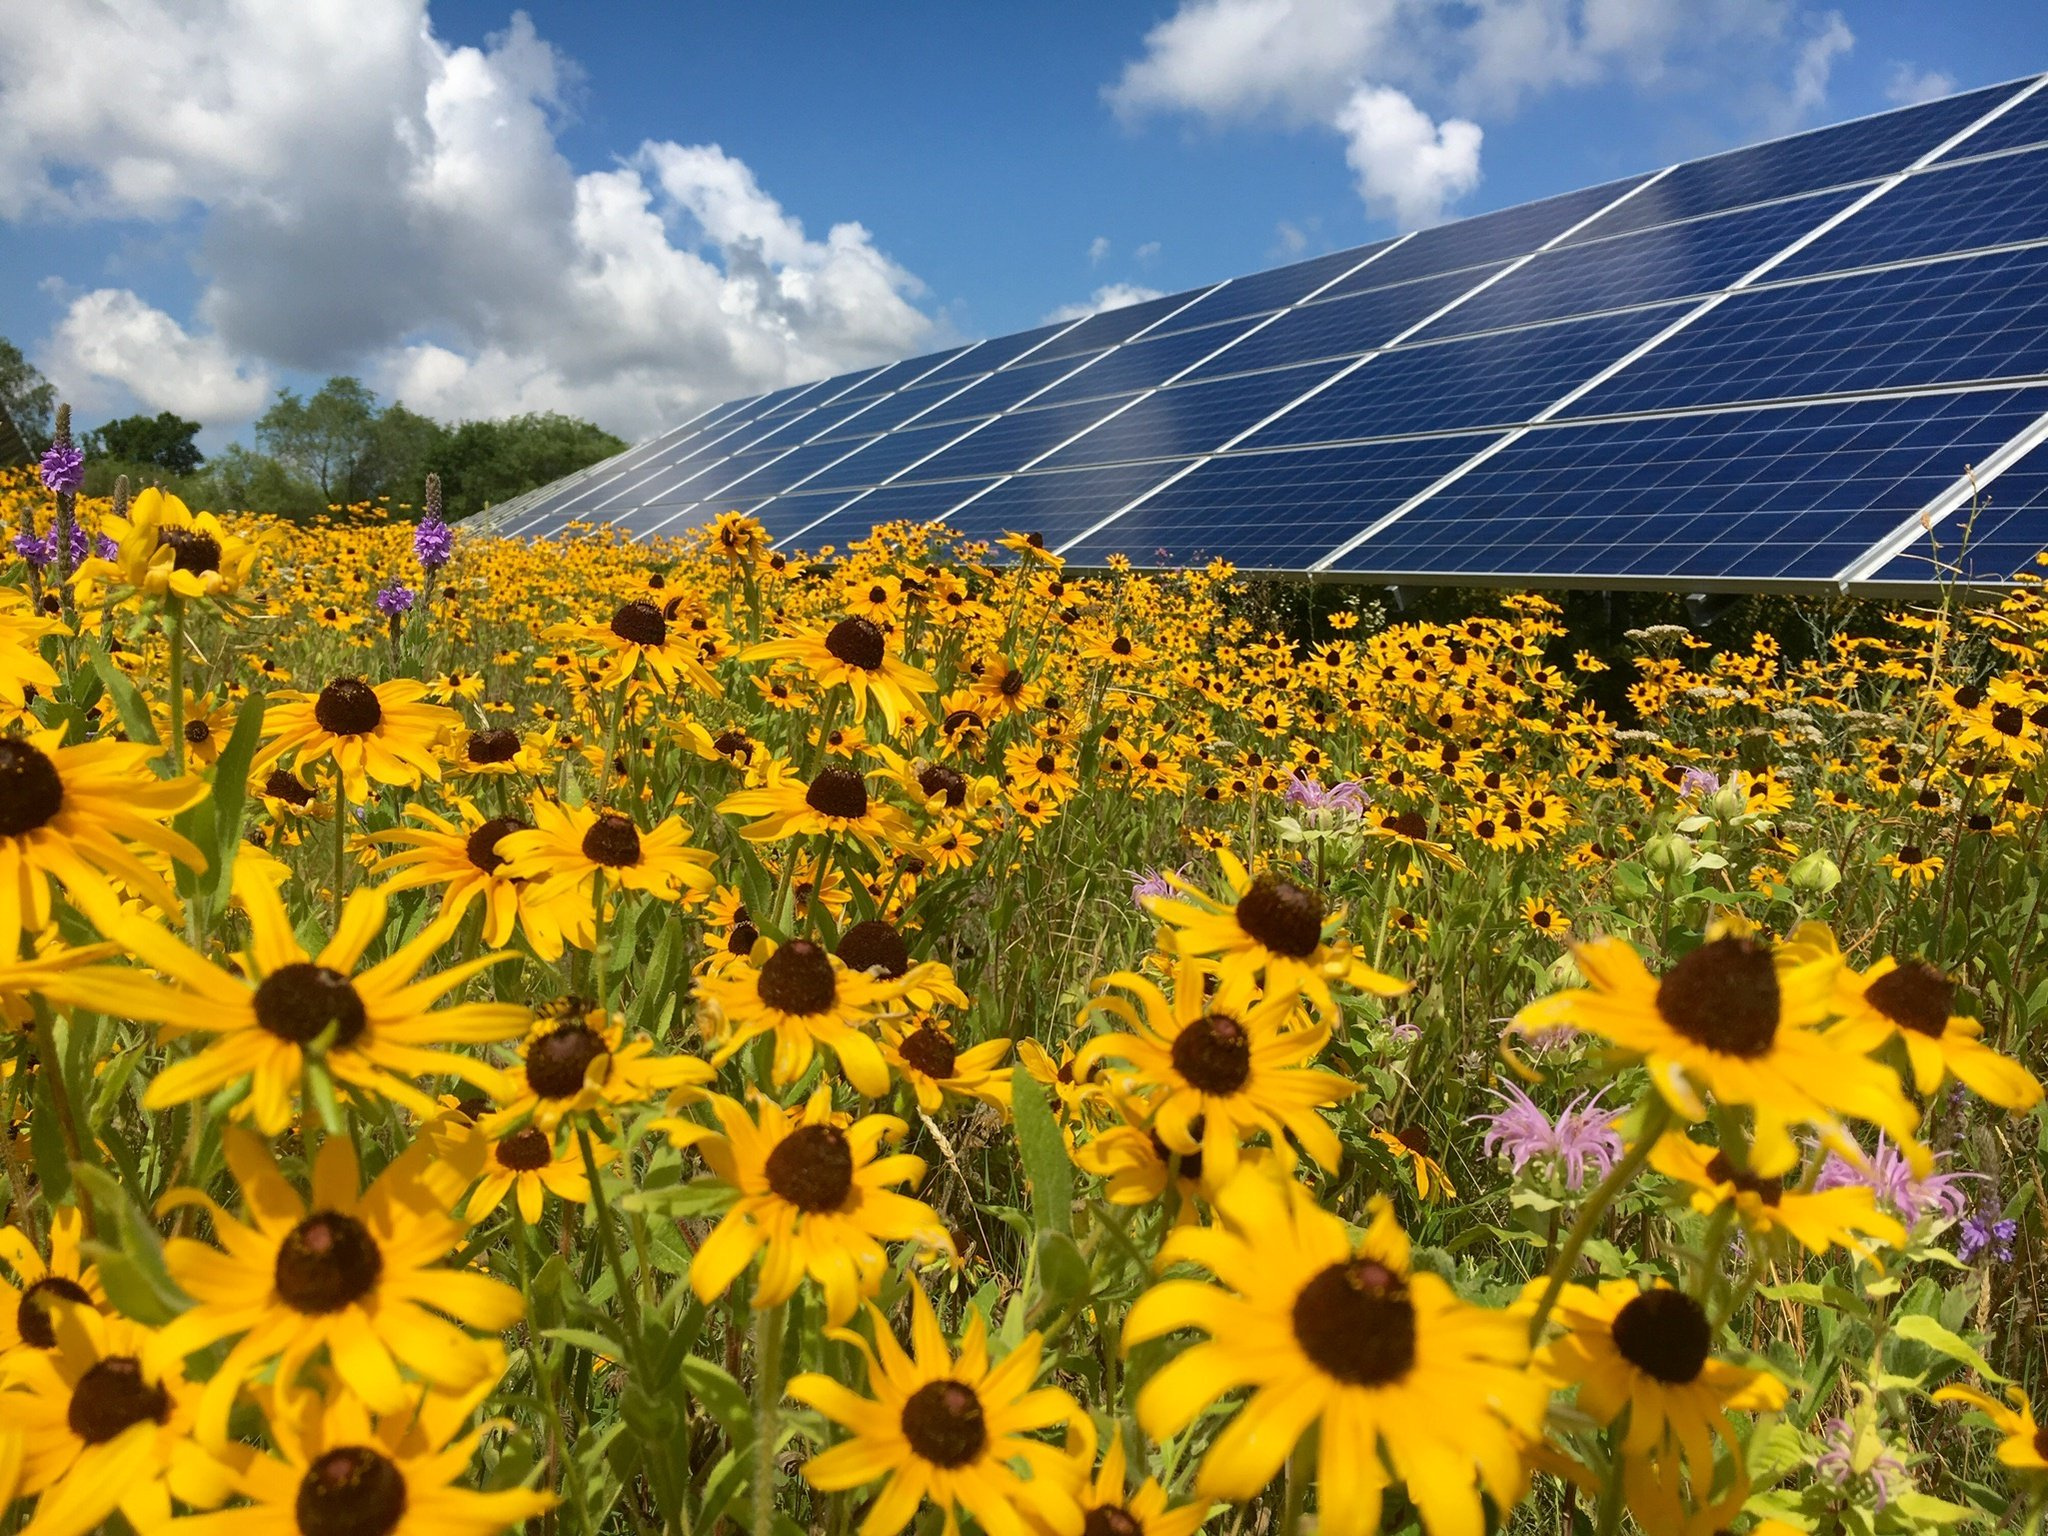 Pollinator habitats: The bees' knees of rural solar development